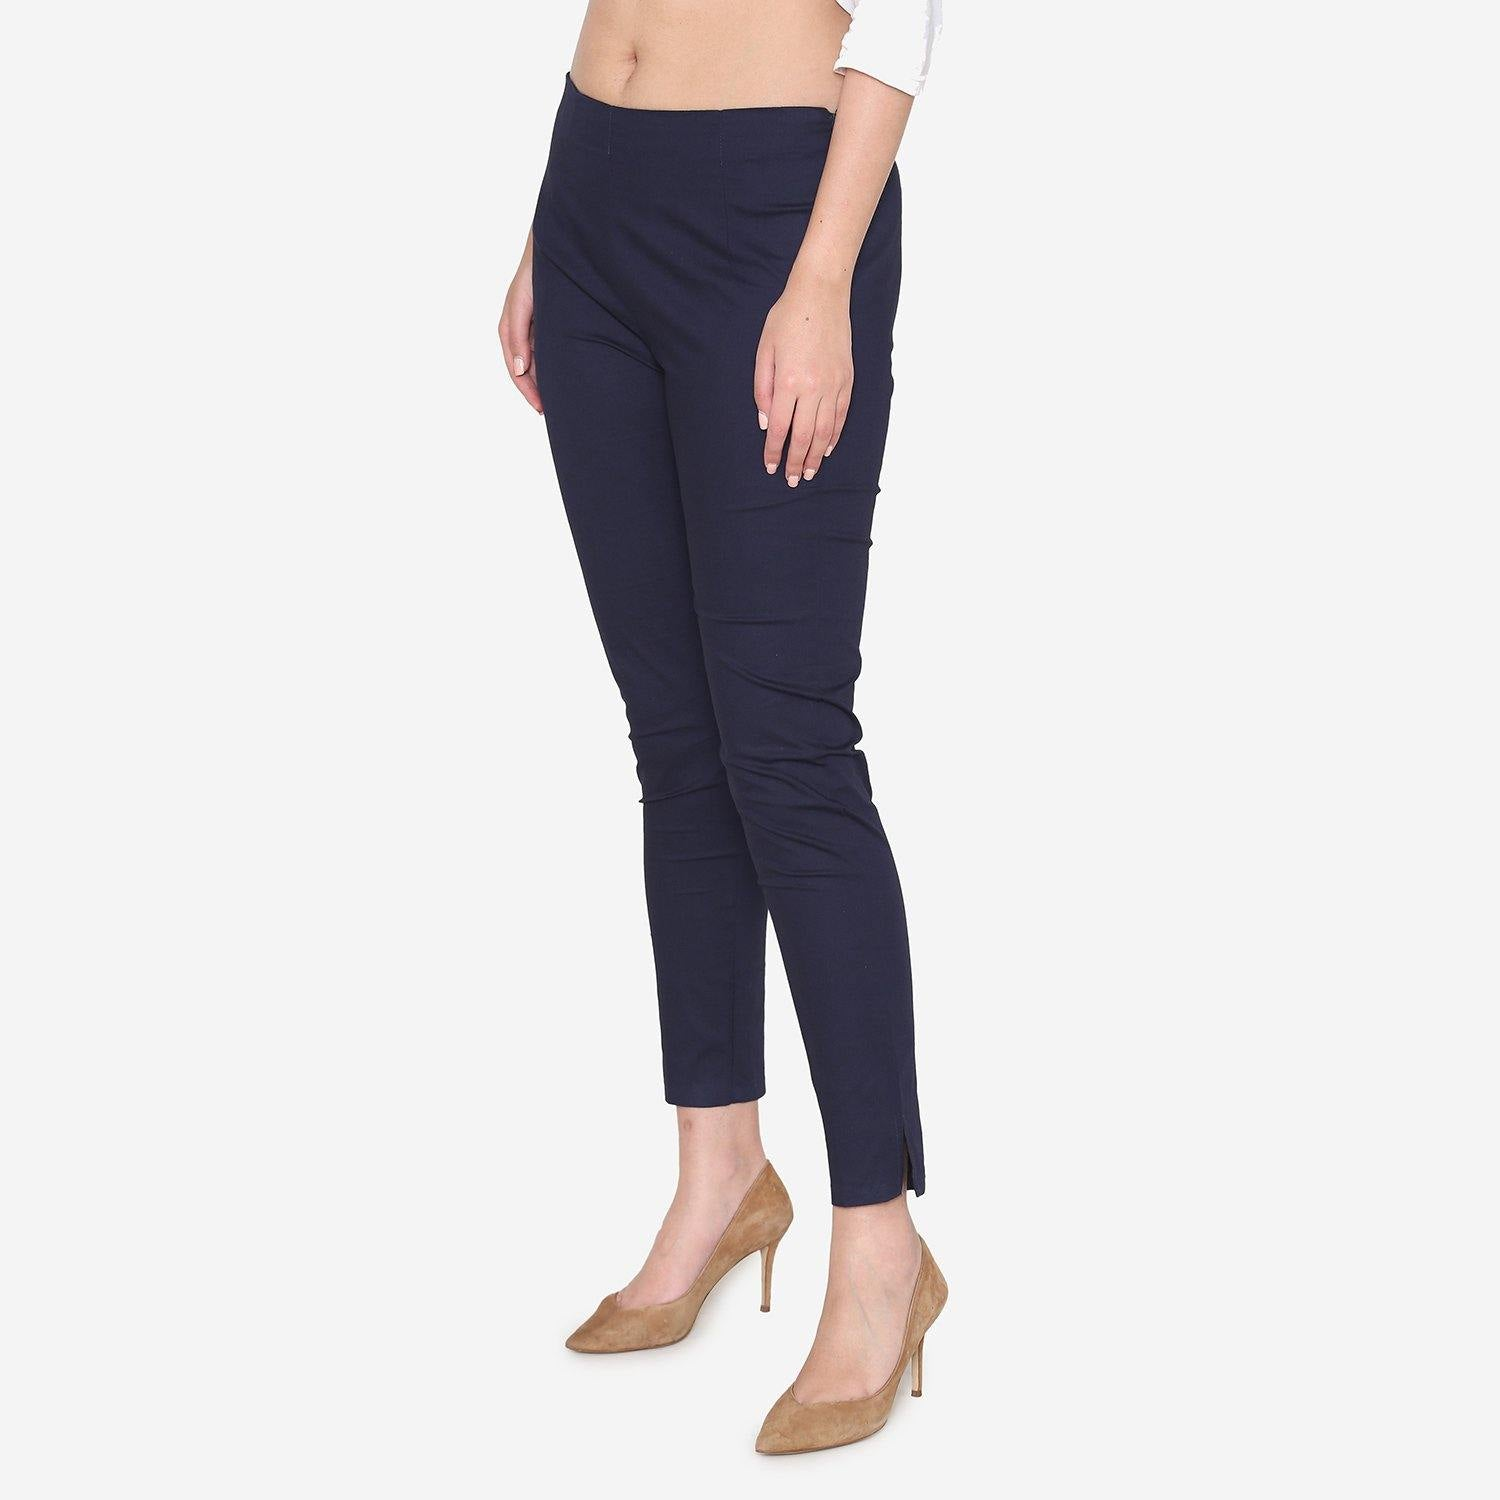 Vami Women's Cotton Formal Trousers - Navy